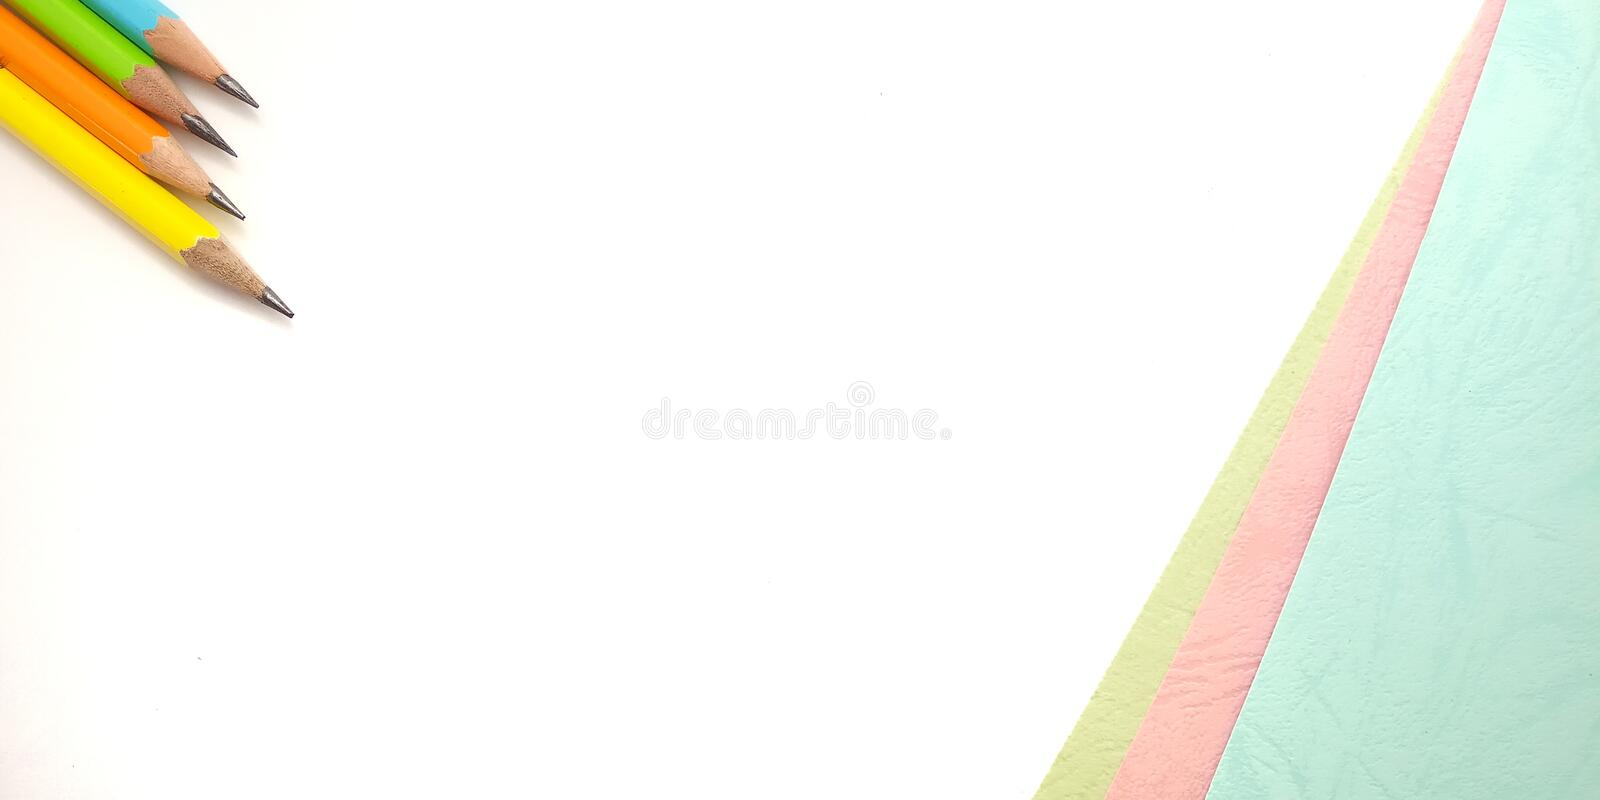 Flat Lay, White Pink Blue Photo Blank Template for Background Element Design for message, quote, information text placement with. Pencil royalty free stock photo